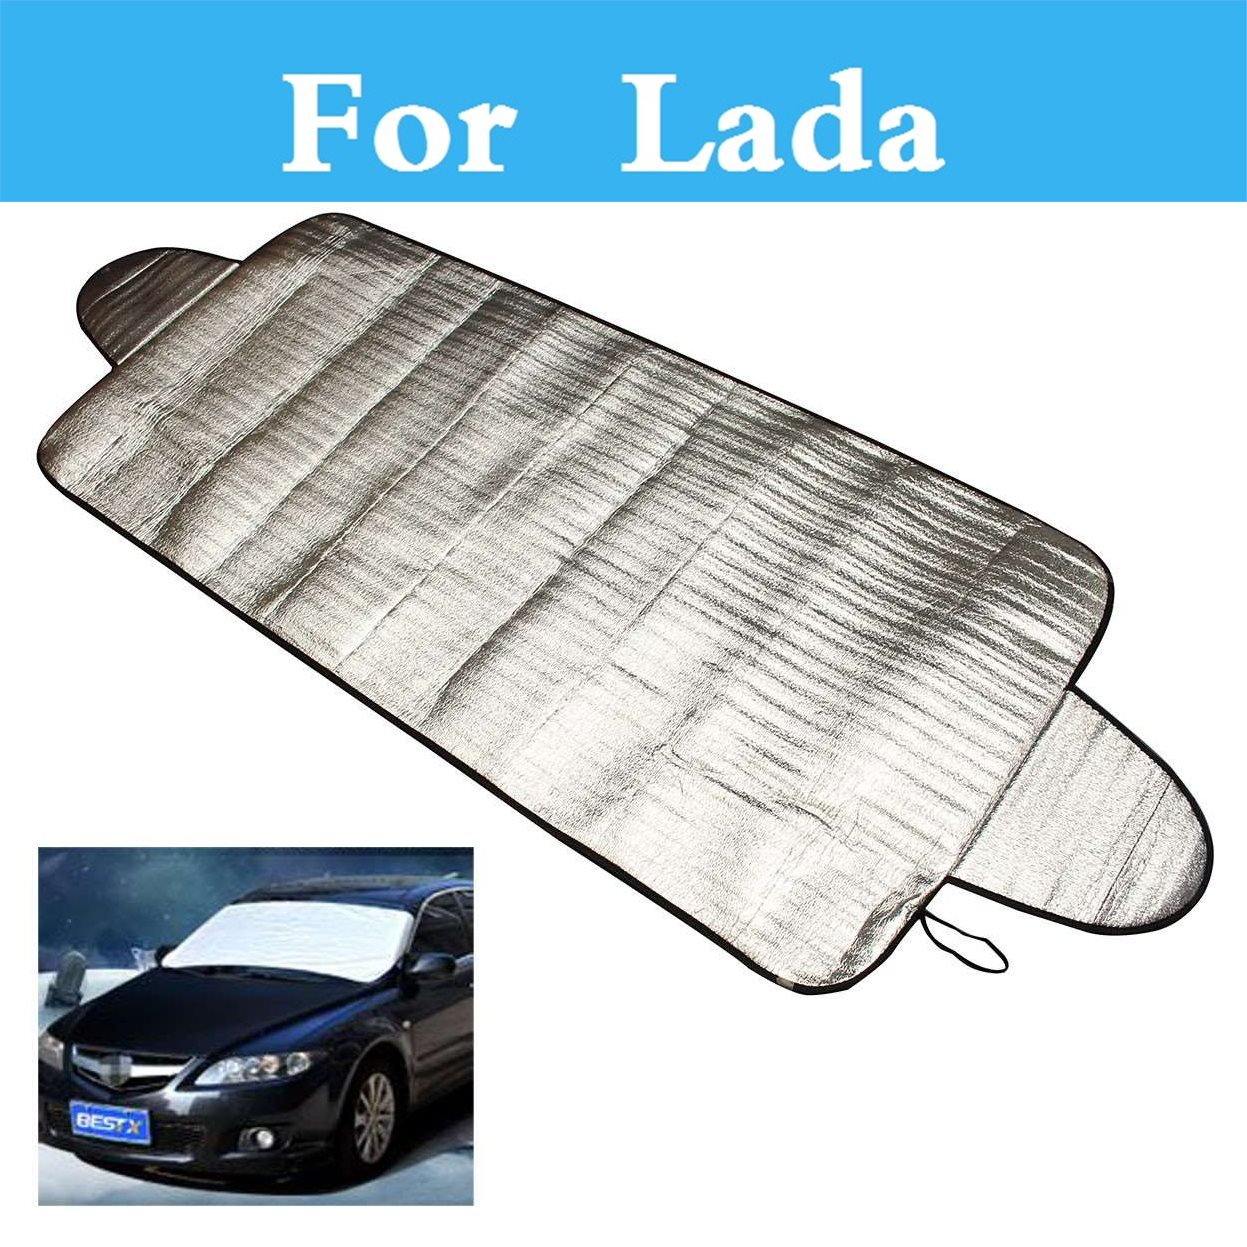 Auto Cover Car Windshield Windscreen Sunshade Sun Visor För Lada 1111 Oka 2105 2106 2107 2109 2110 2112 2113 2114 2115